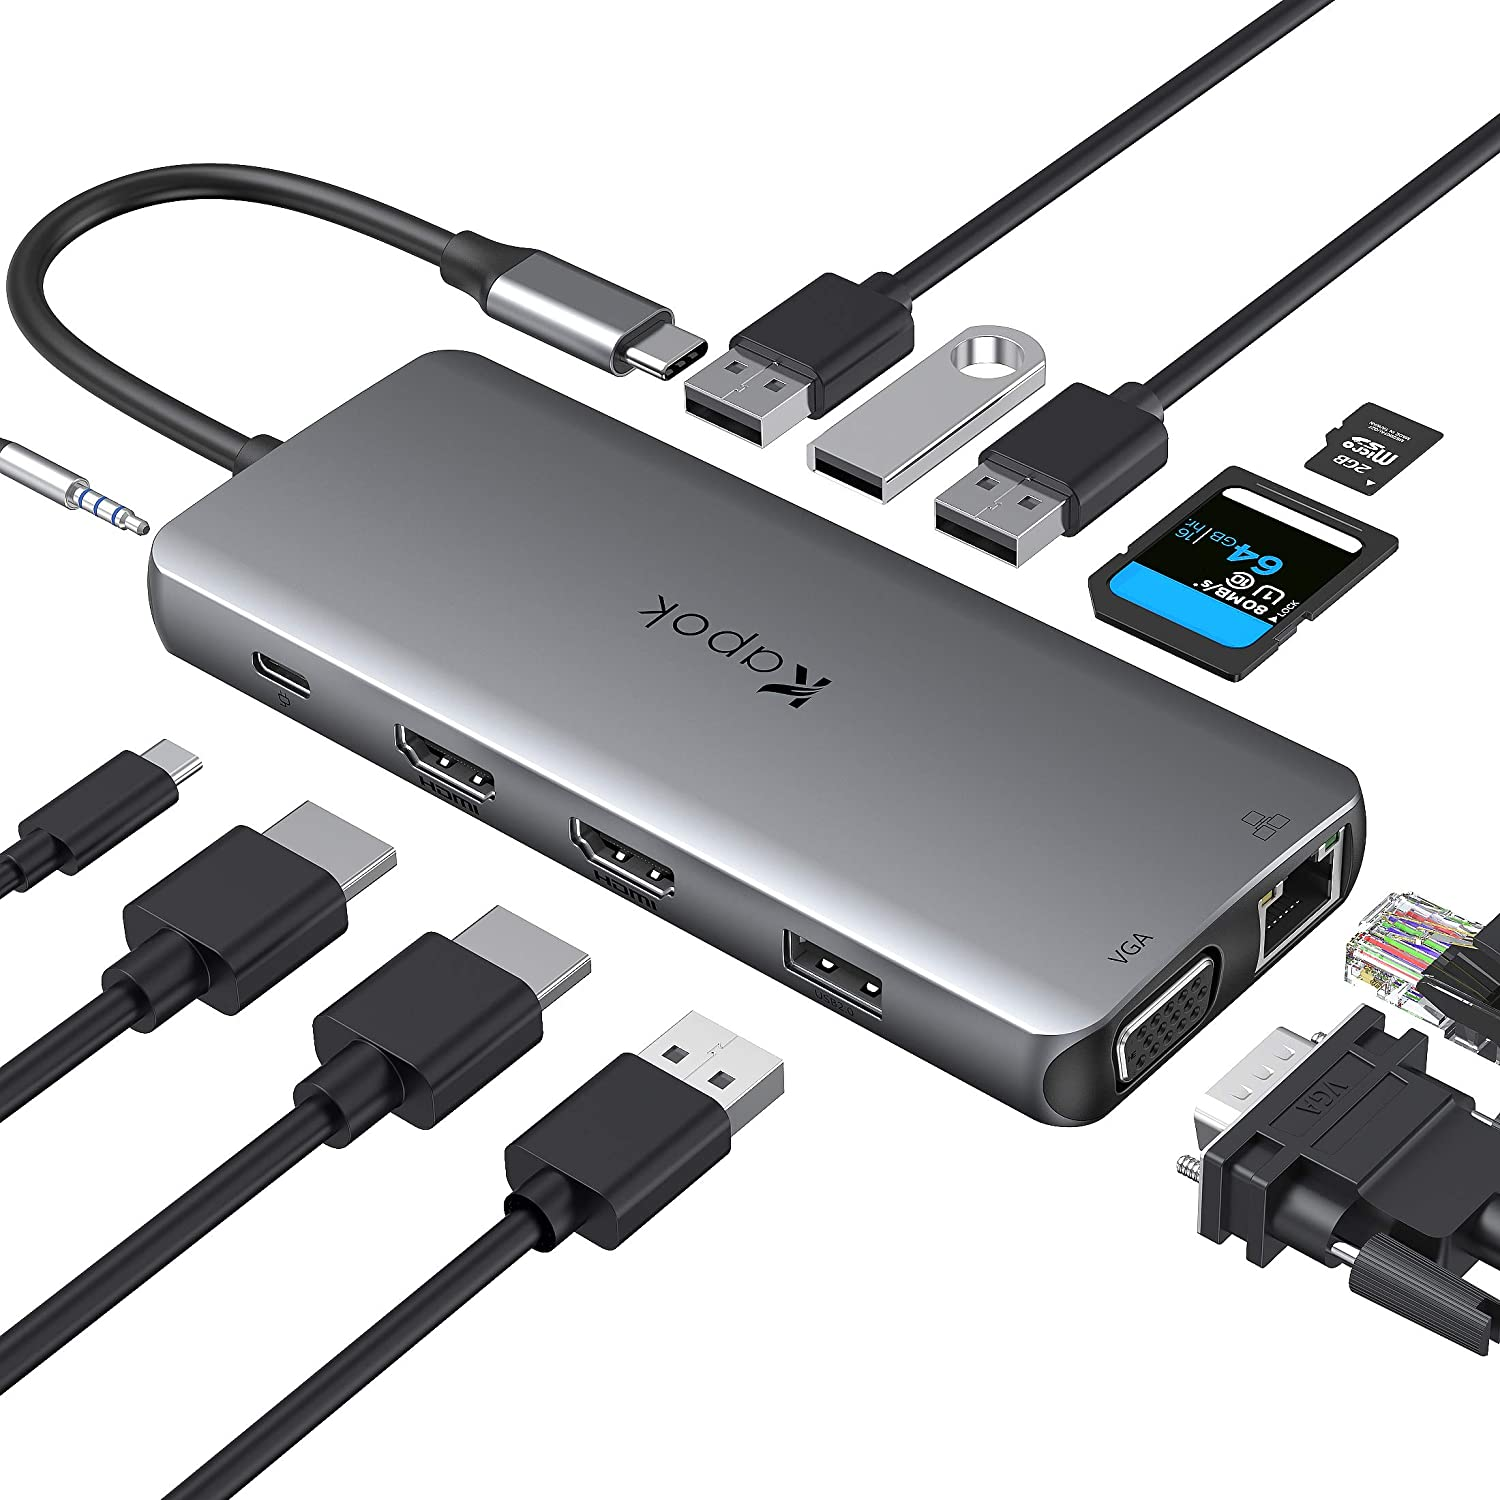 USB C to Dual HDMI Adapter 12 in 1 Adapter with Ethernet Triple Display USB C Multiport Adapter Hub USB C Dongle Type C Hub for MacBook Pro, Surface pro 7, Dell XPS 13/15, Huawei Matebook X pro, etc